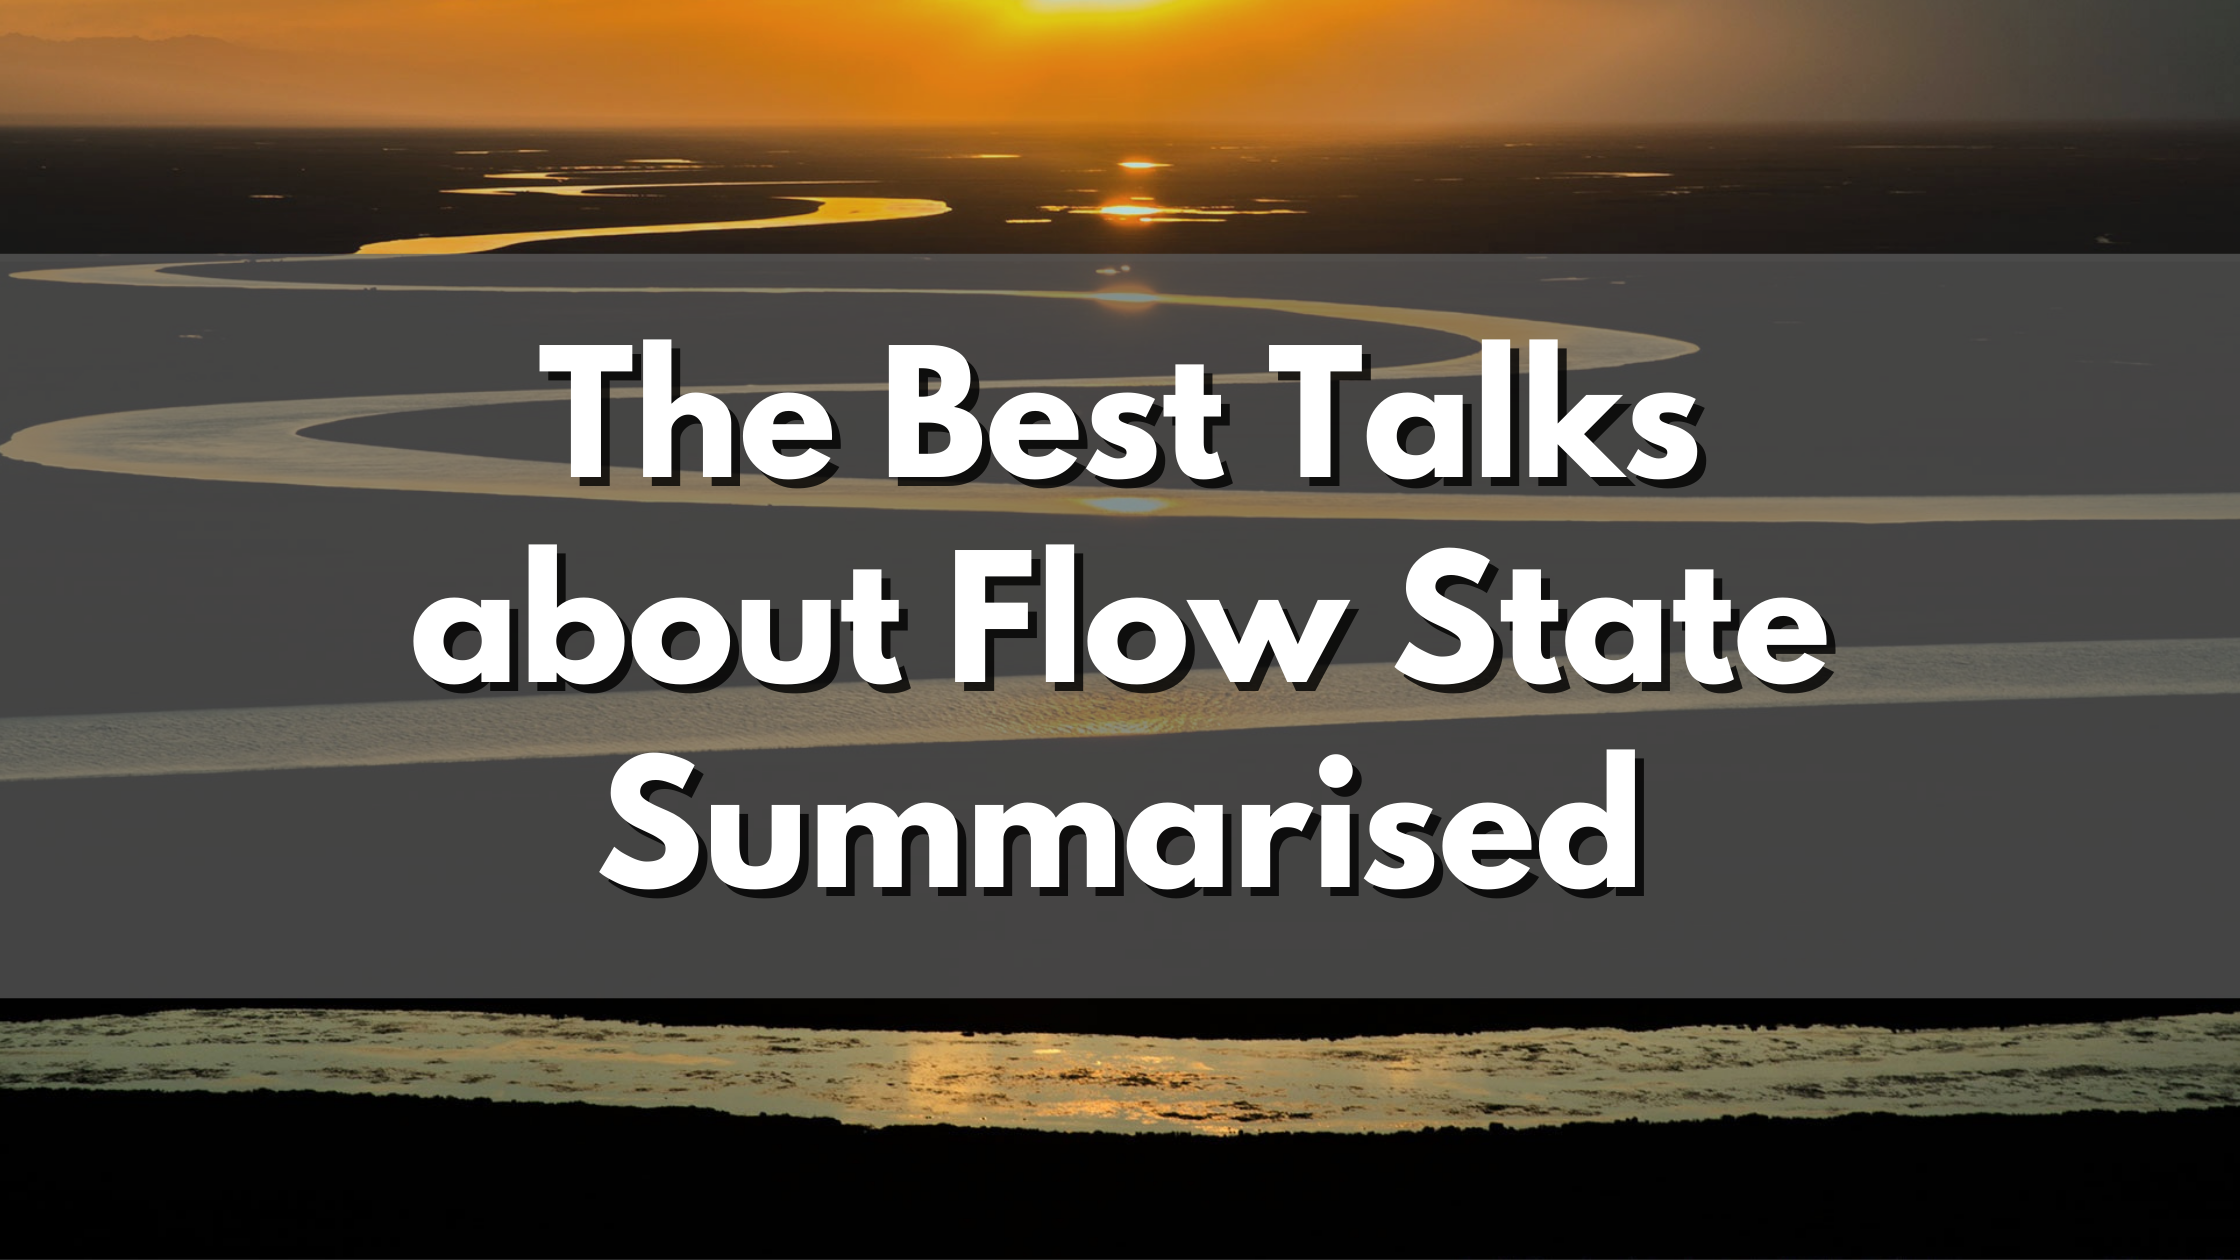 The Best Three Talks about Flow State Summarised